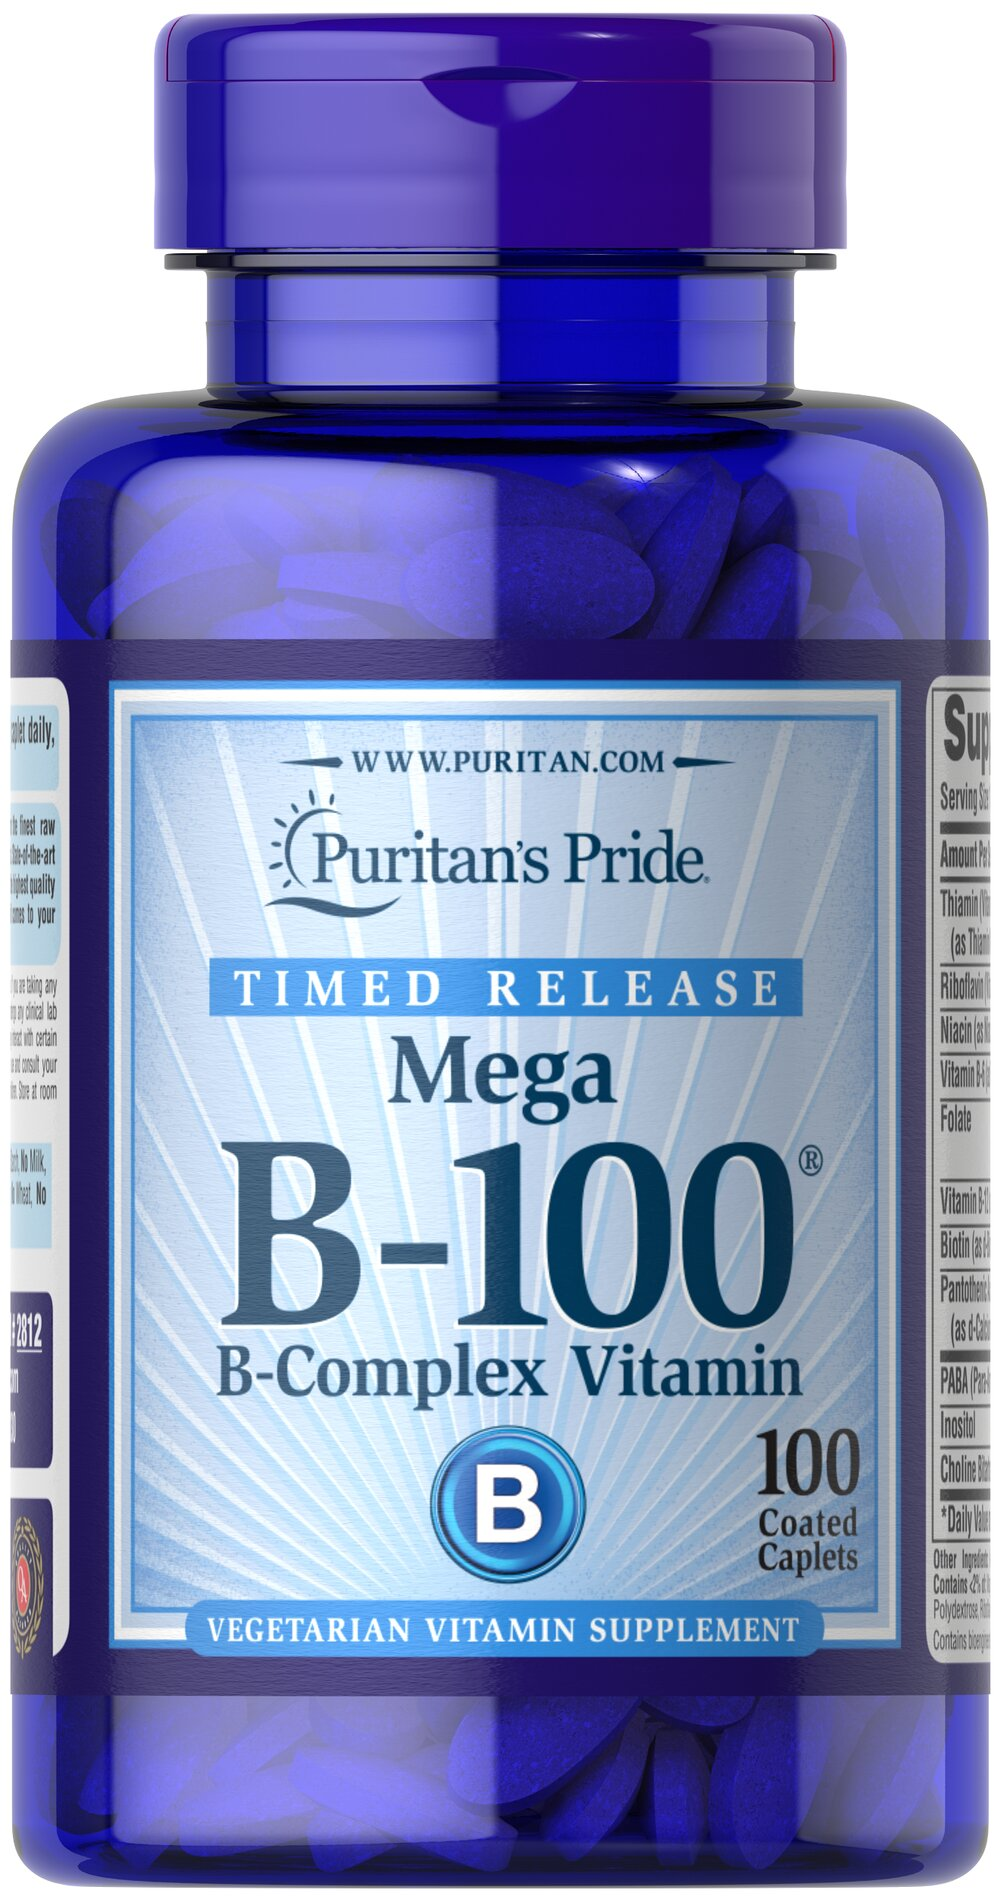 Vitamin B-100® Complex Timed Release <p>Each nutrient in the Vitamin B-100® Complex performs a unique role in maintaining proper metabolic functioning and is essential for well being.** When taken together in a complex formula, the B Vitamins help to maintain the health of the nervous system, skin, eyes and hair.** This product is specially formulated to provide a gradual release of vitamins over a prolonged period of time.</p>  100 Caplets 100 mg $33.99